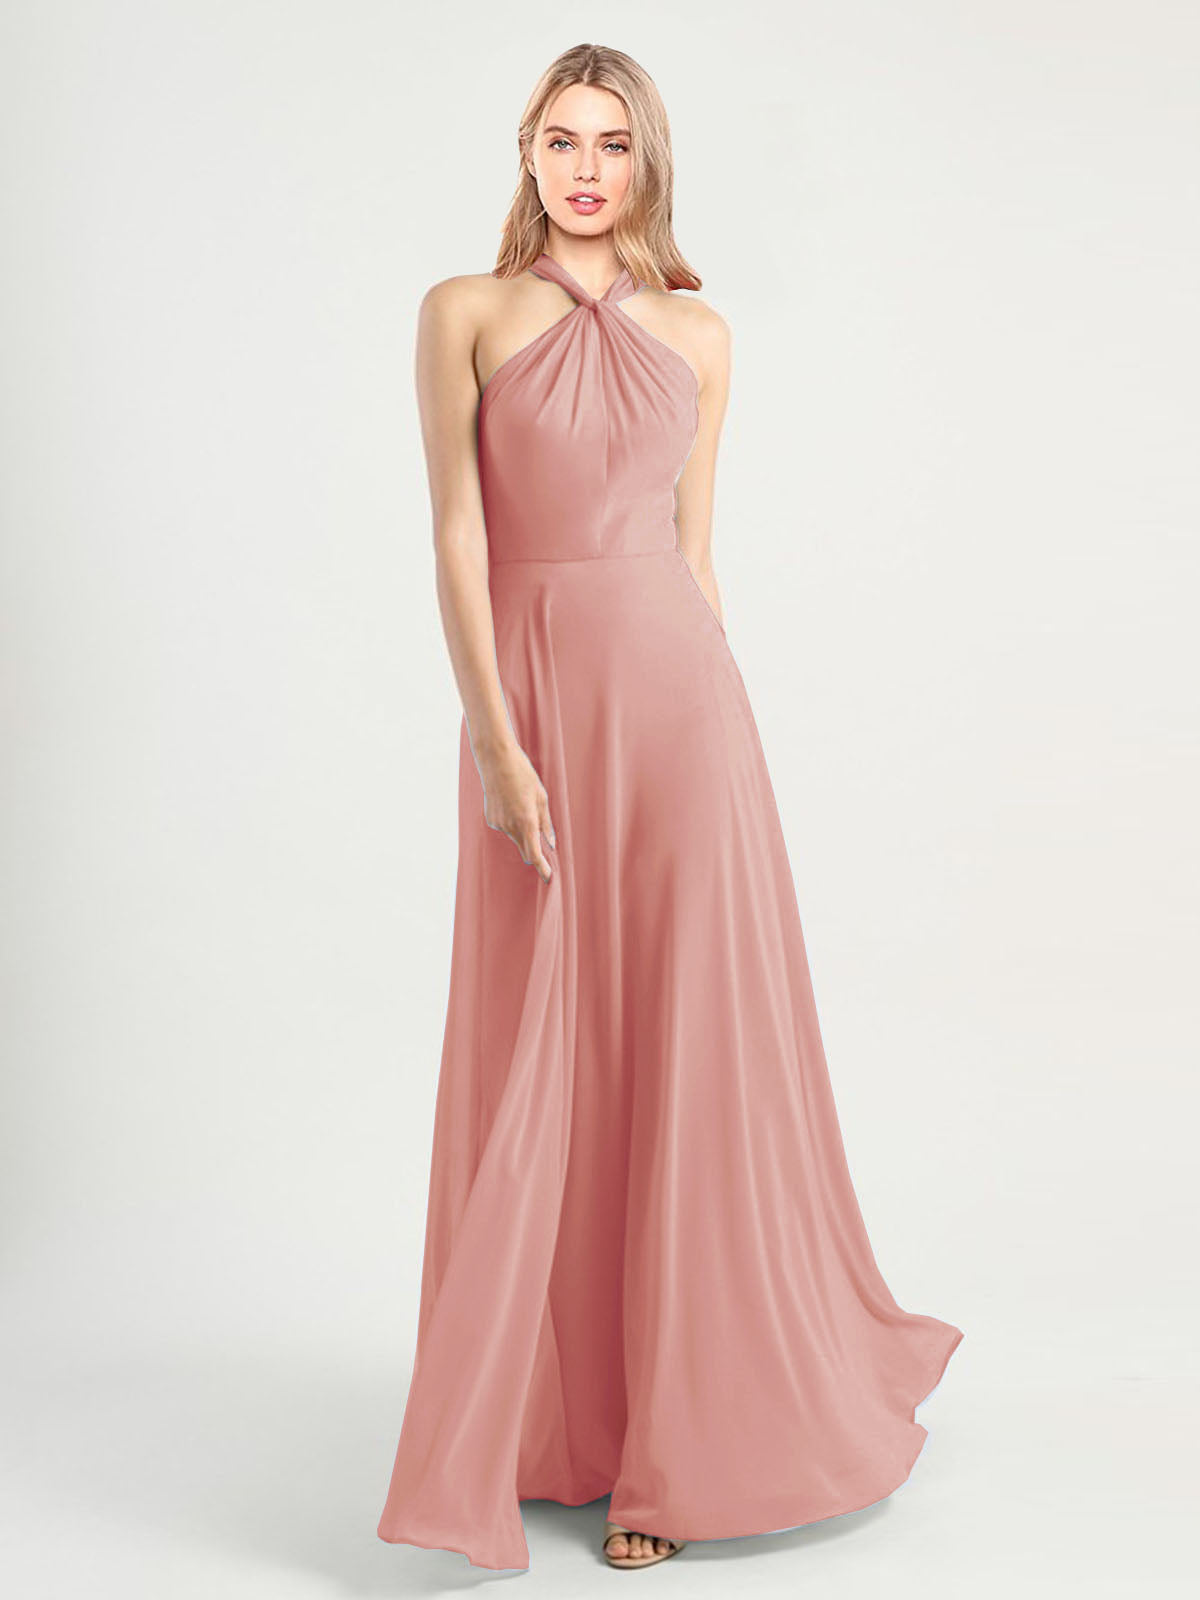 Long A-Line High Neck, Halter Sleeveless Bliss Chiffon Bridesmaid Dress Yoli